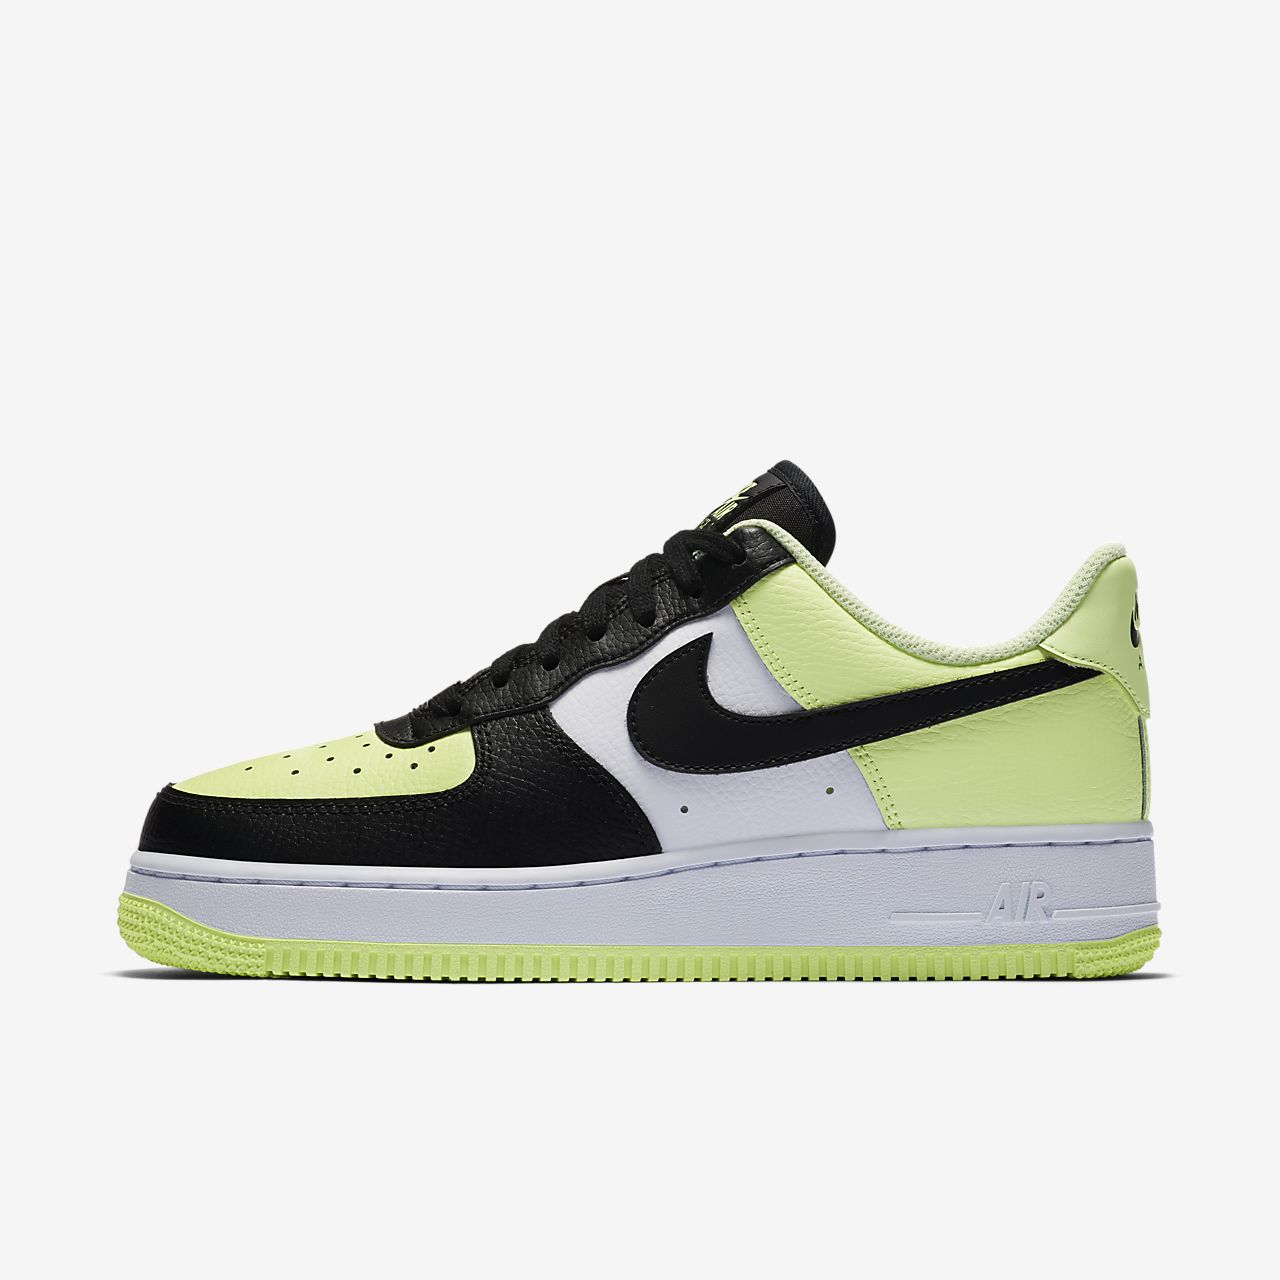 nike air force 1 07 donna bianche e nere